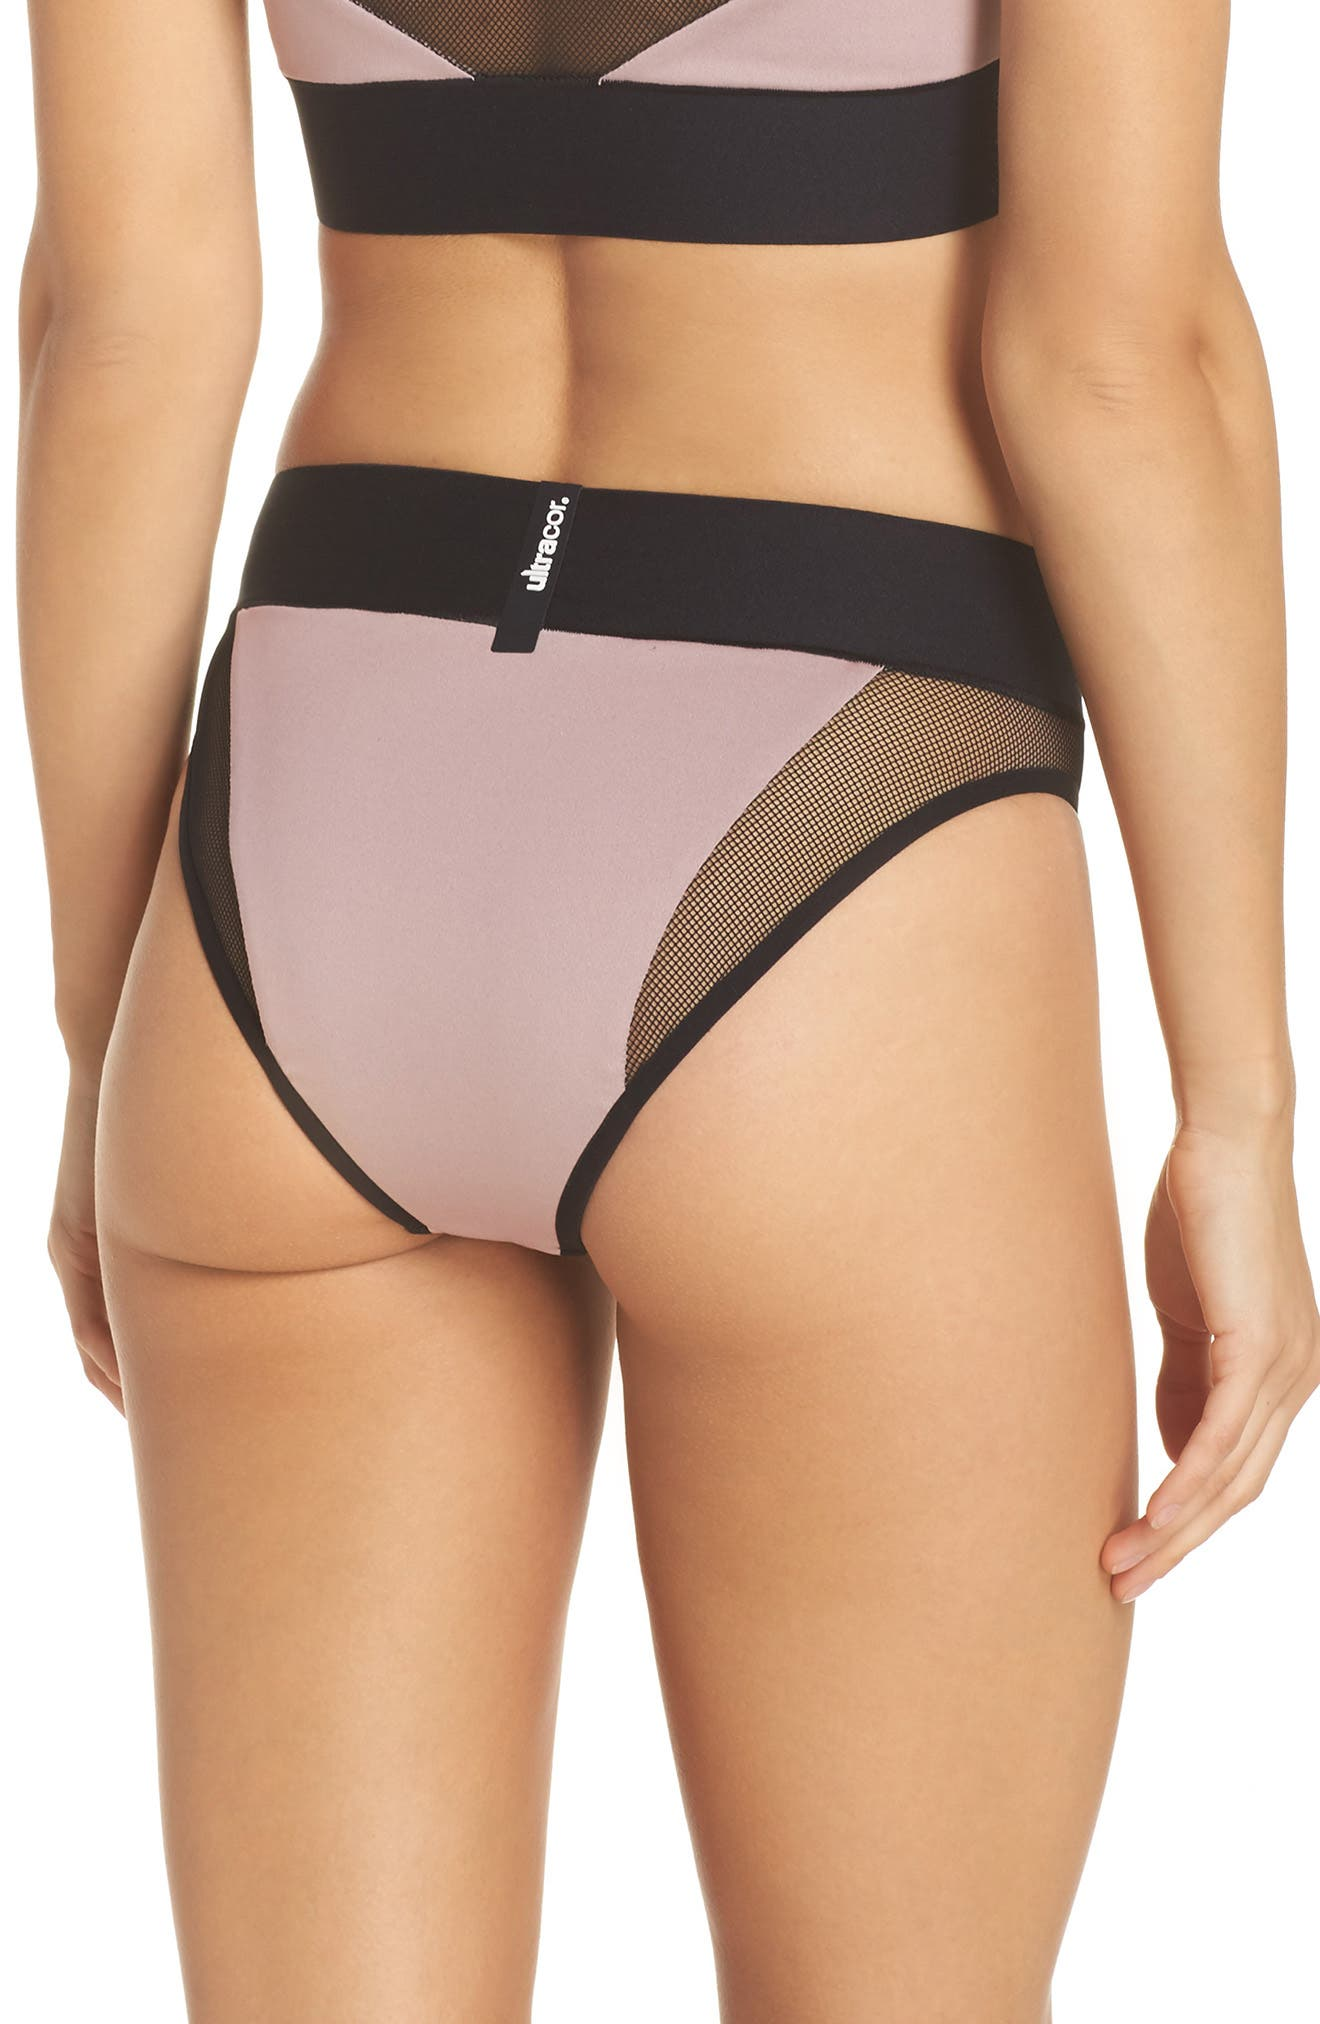 Reef Sport Mesh High-Waist Bikini Bottoms,                             Alternate thumbnail 2, color,                             Blush Pink